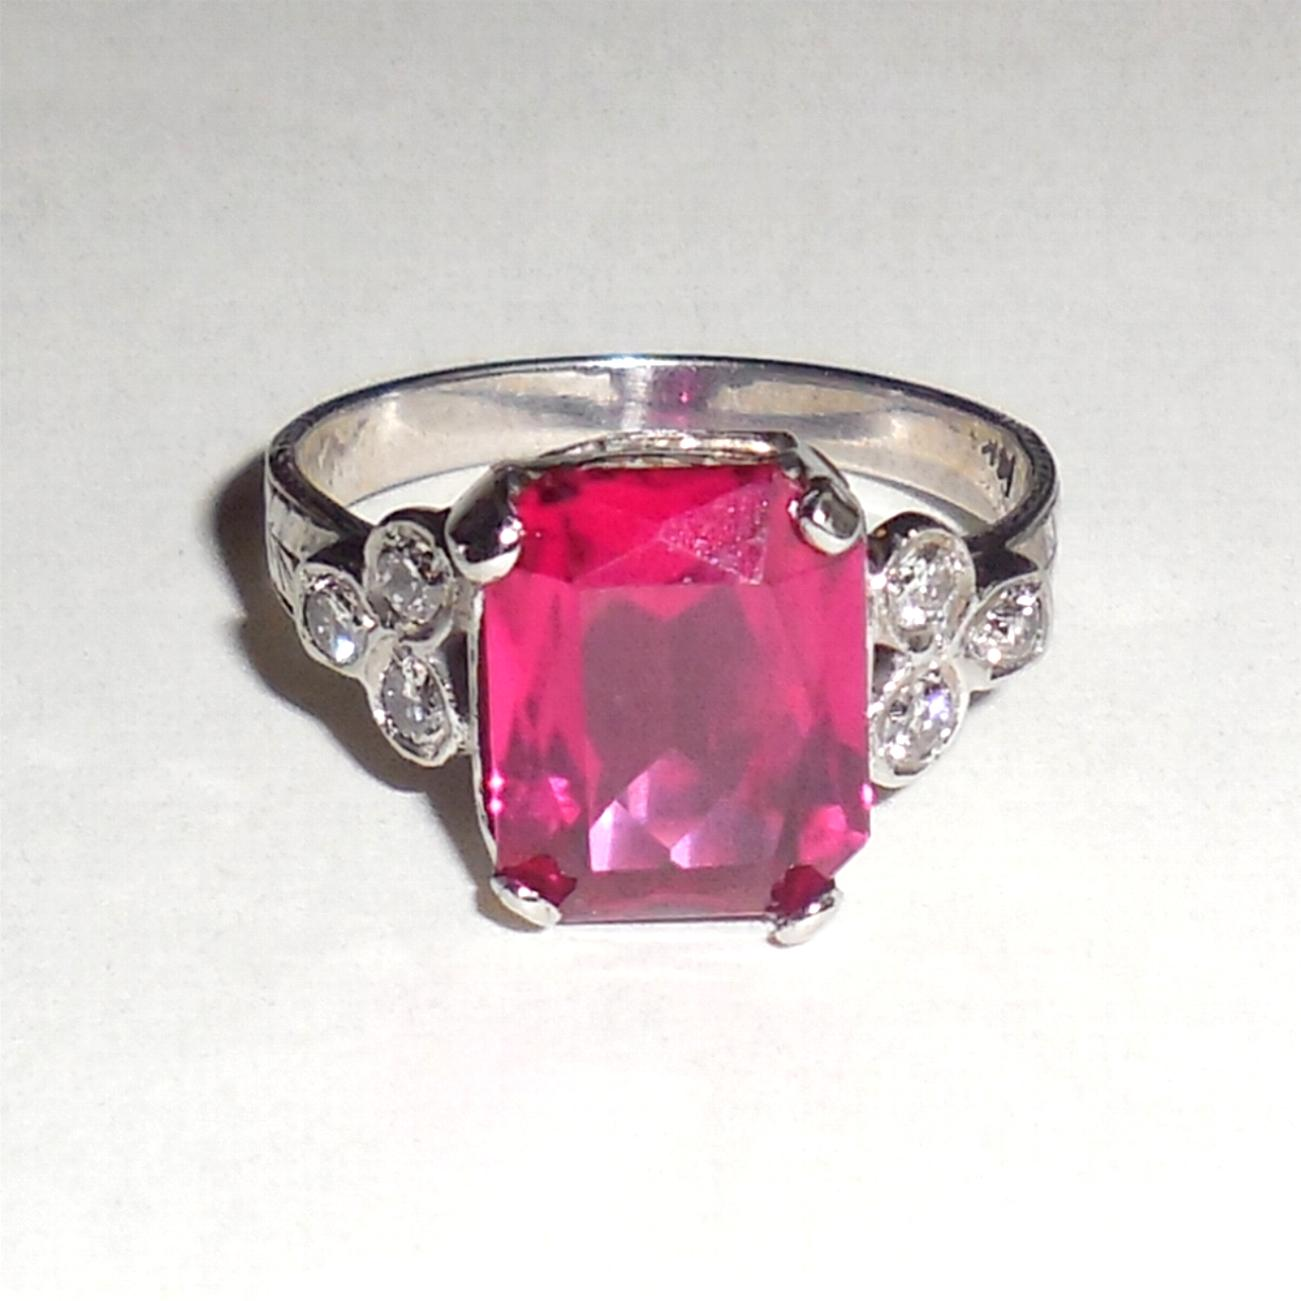 Art Deco 14K White Gold Diamond Synthetic Ruby Ring 5.75